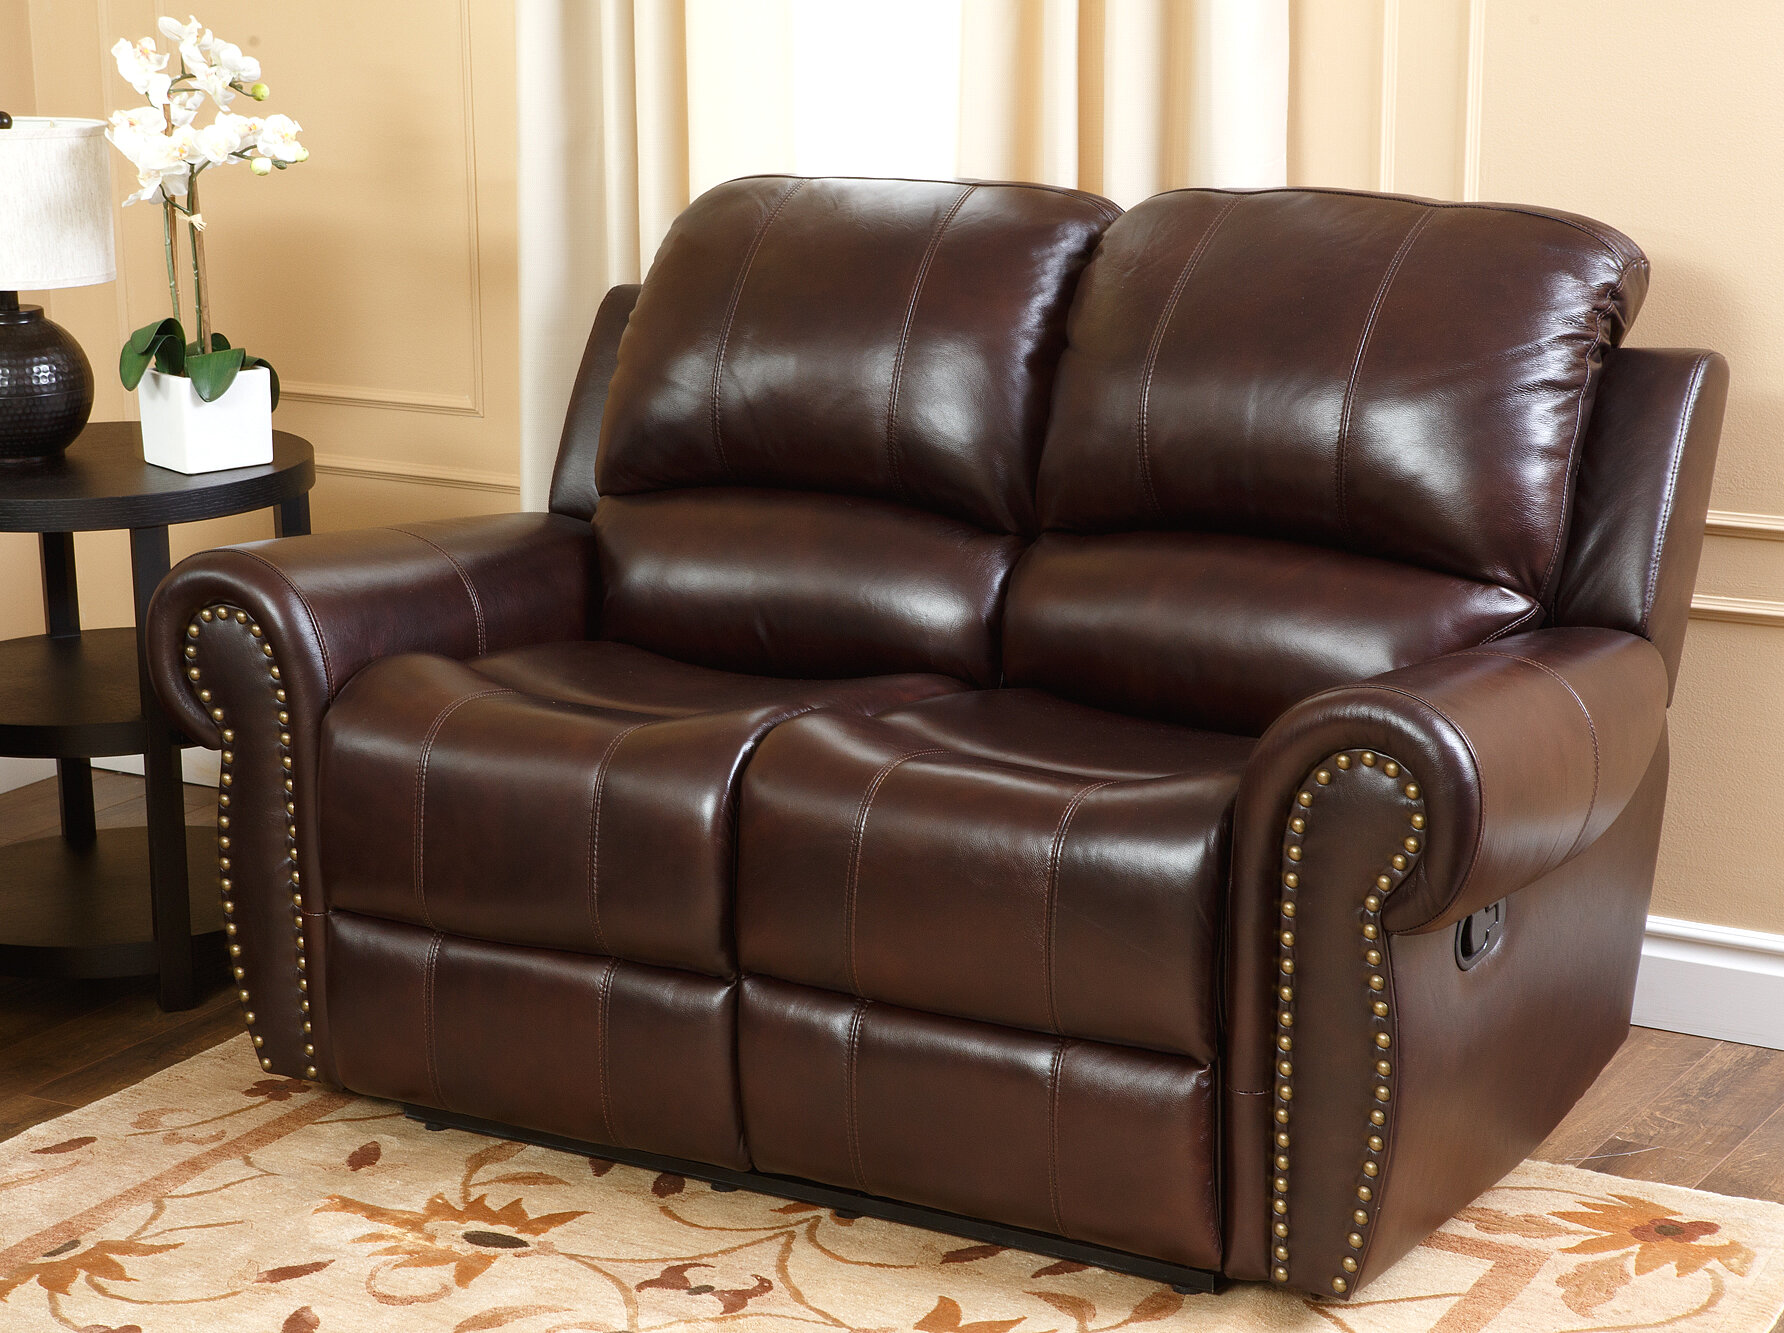 Barnsdale reclining italian leather sofa and loveseat set in two tone burgundy Leather sofa and loveseat recliner